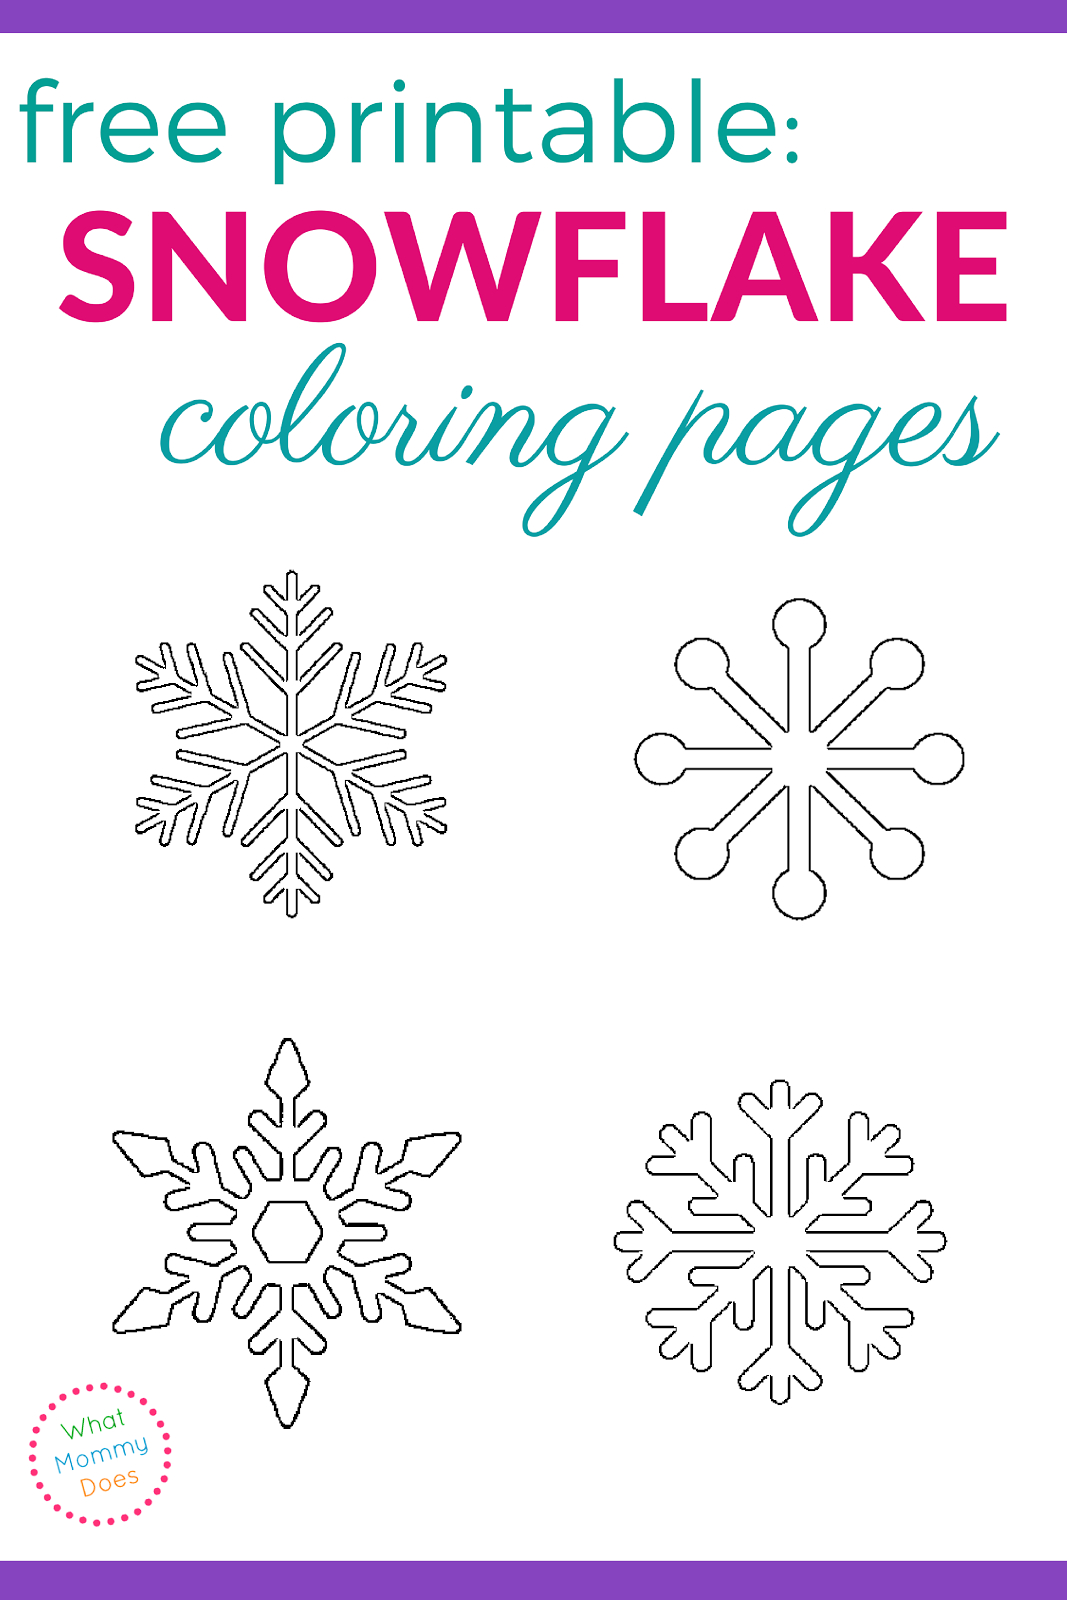 Printable Snowflake Coloring Pages   Download   Snowflake Coloring - Free Snowflake Printable Coloring Pages